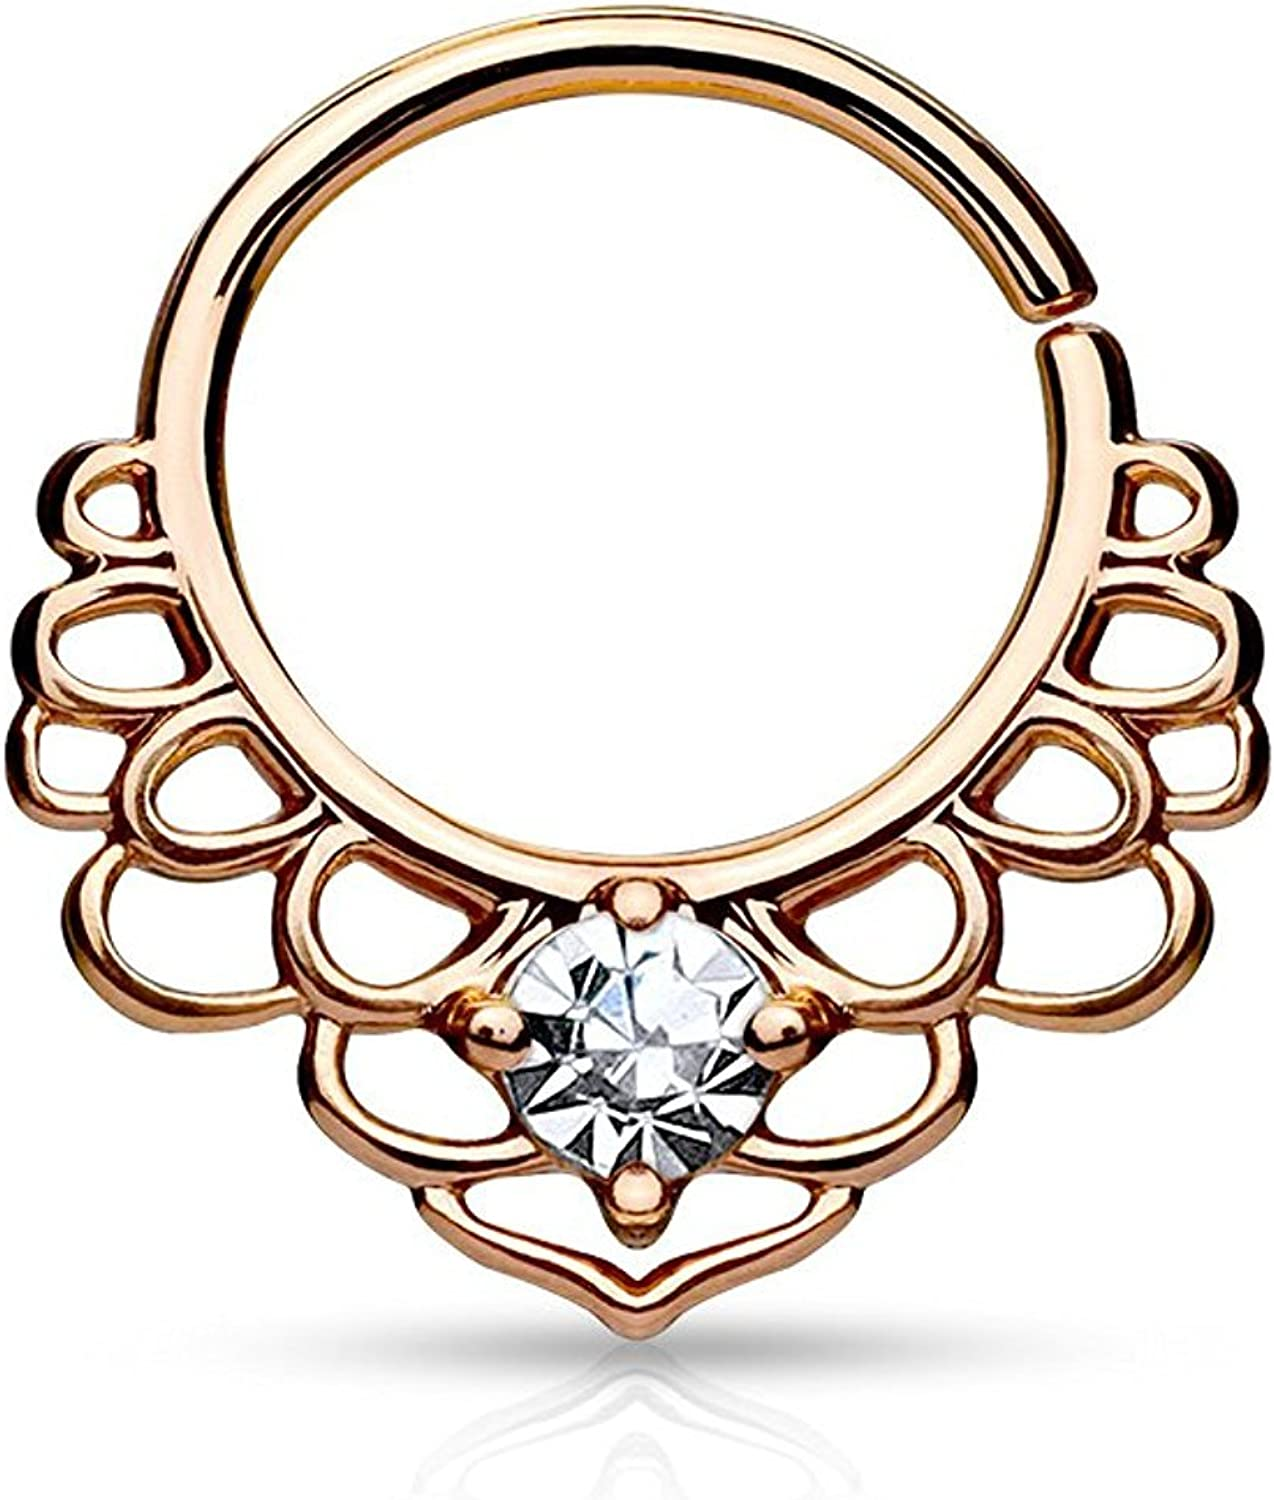 Covet Jewelry CZ Lotus Filigree All Brass Bendable Septum/Cartilage Rings